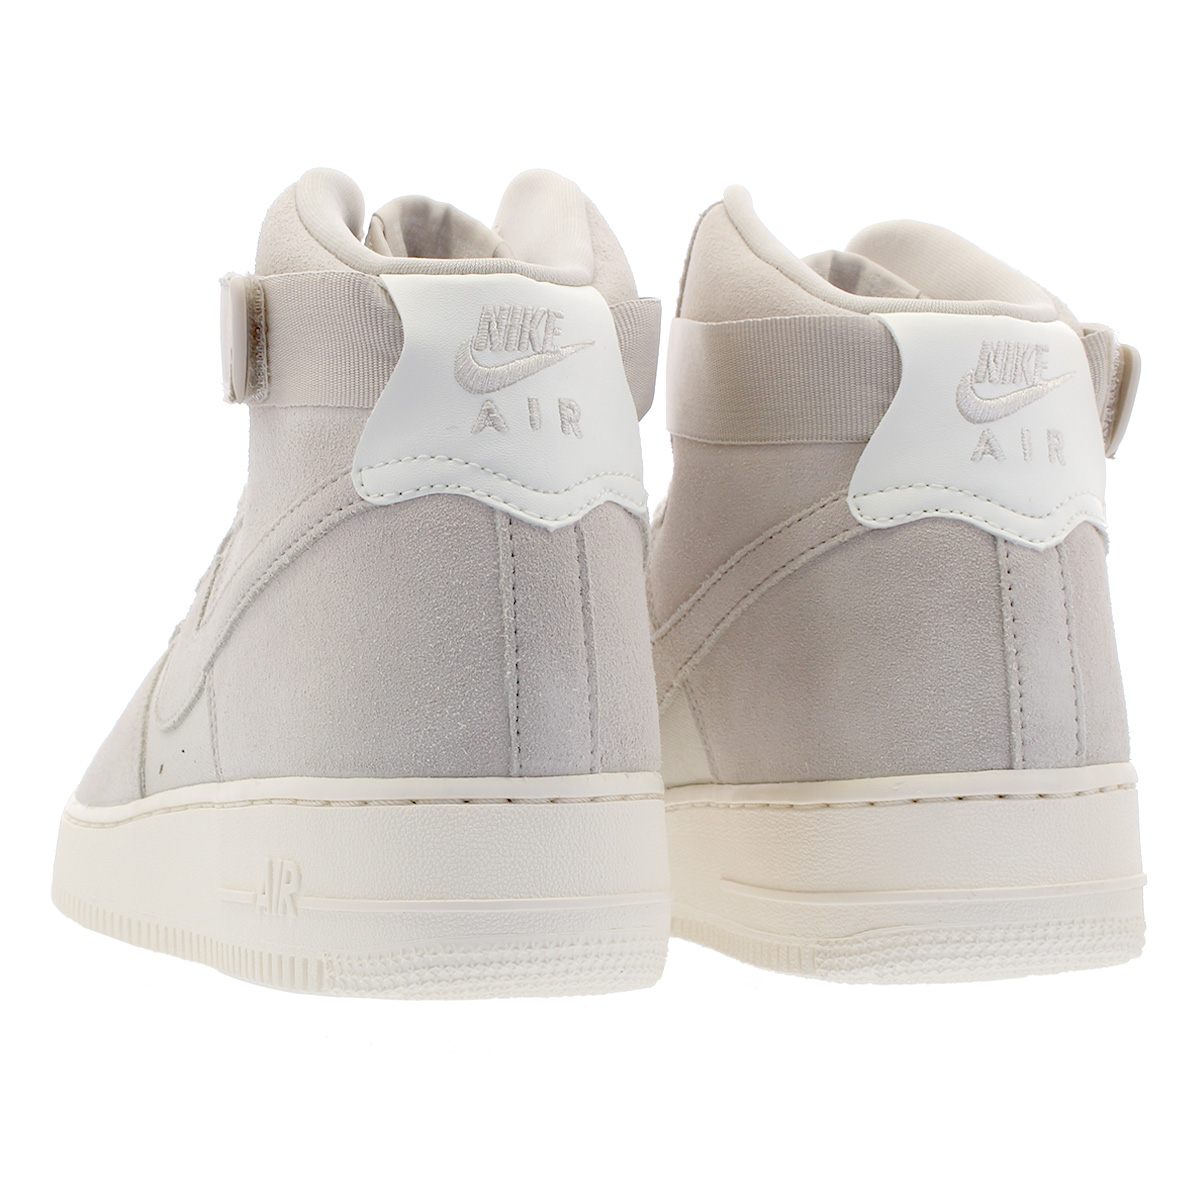 buy online f4e65 2663a NIKE AIR FORCE 1 HIGH 07 SUEDE Nike air force 1 high 07 suede BEIGE CREAM  WHITE WHITE aq8649-001